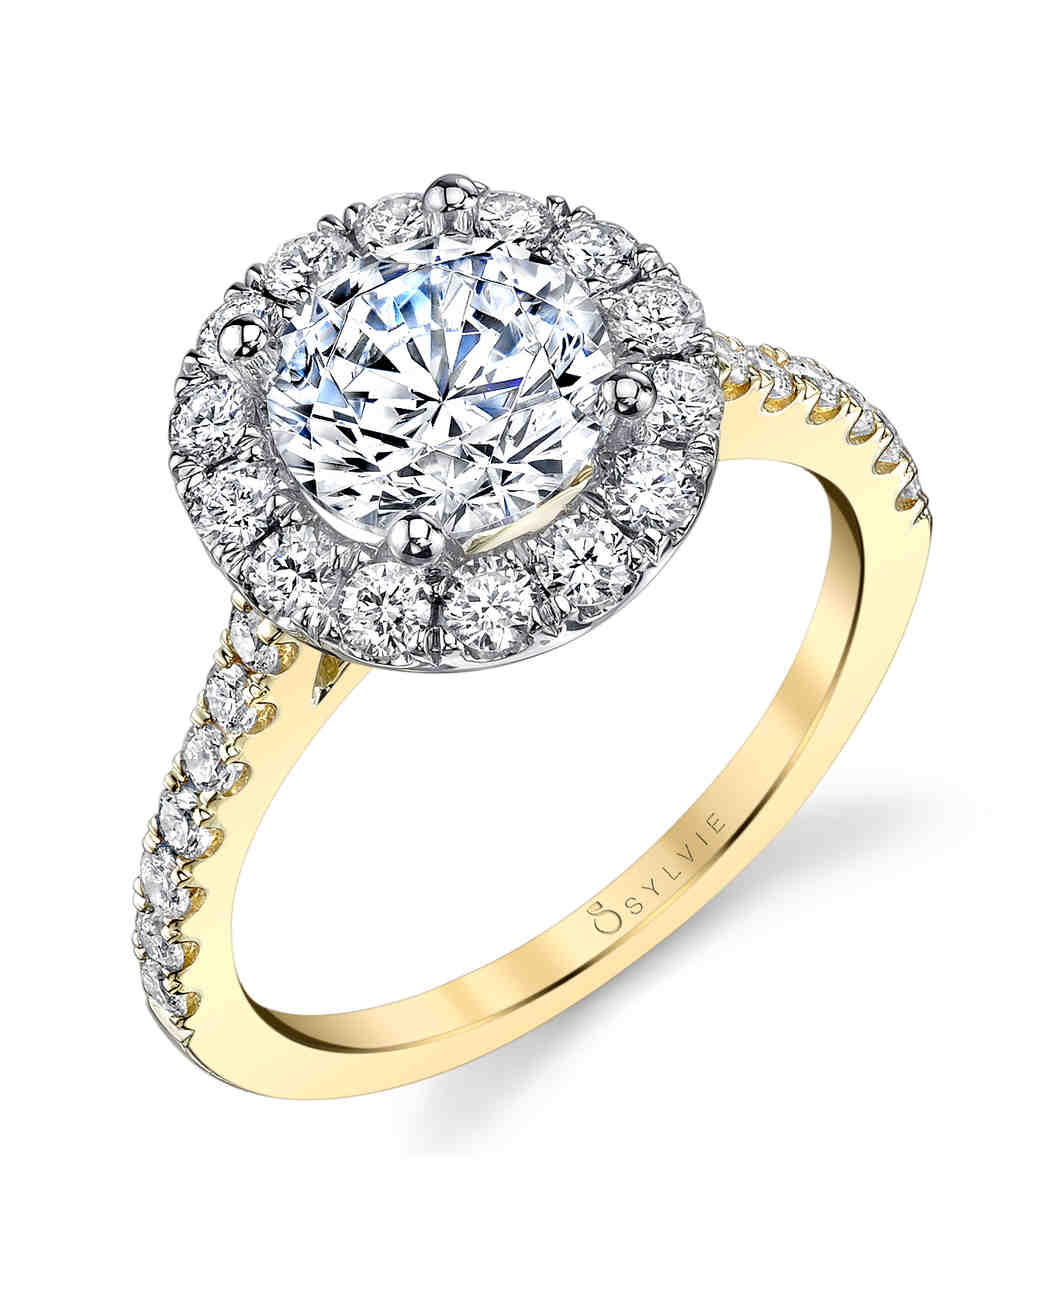 Sylvie Collection two-tone yellow gold engagement ring brilliant round center stone